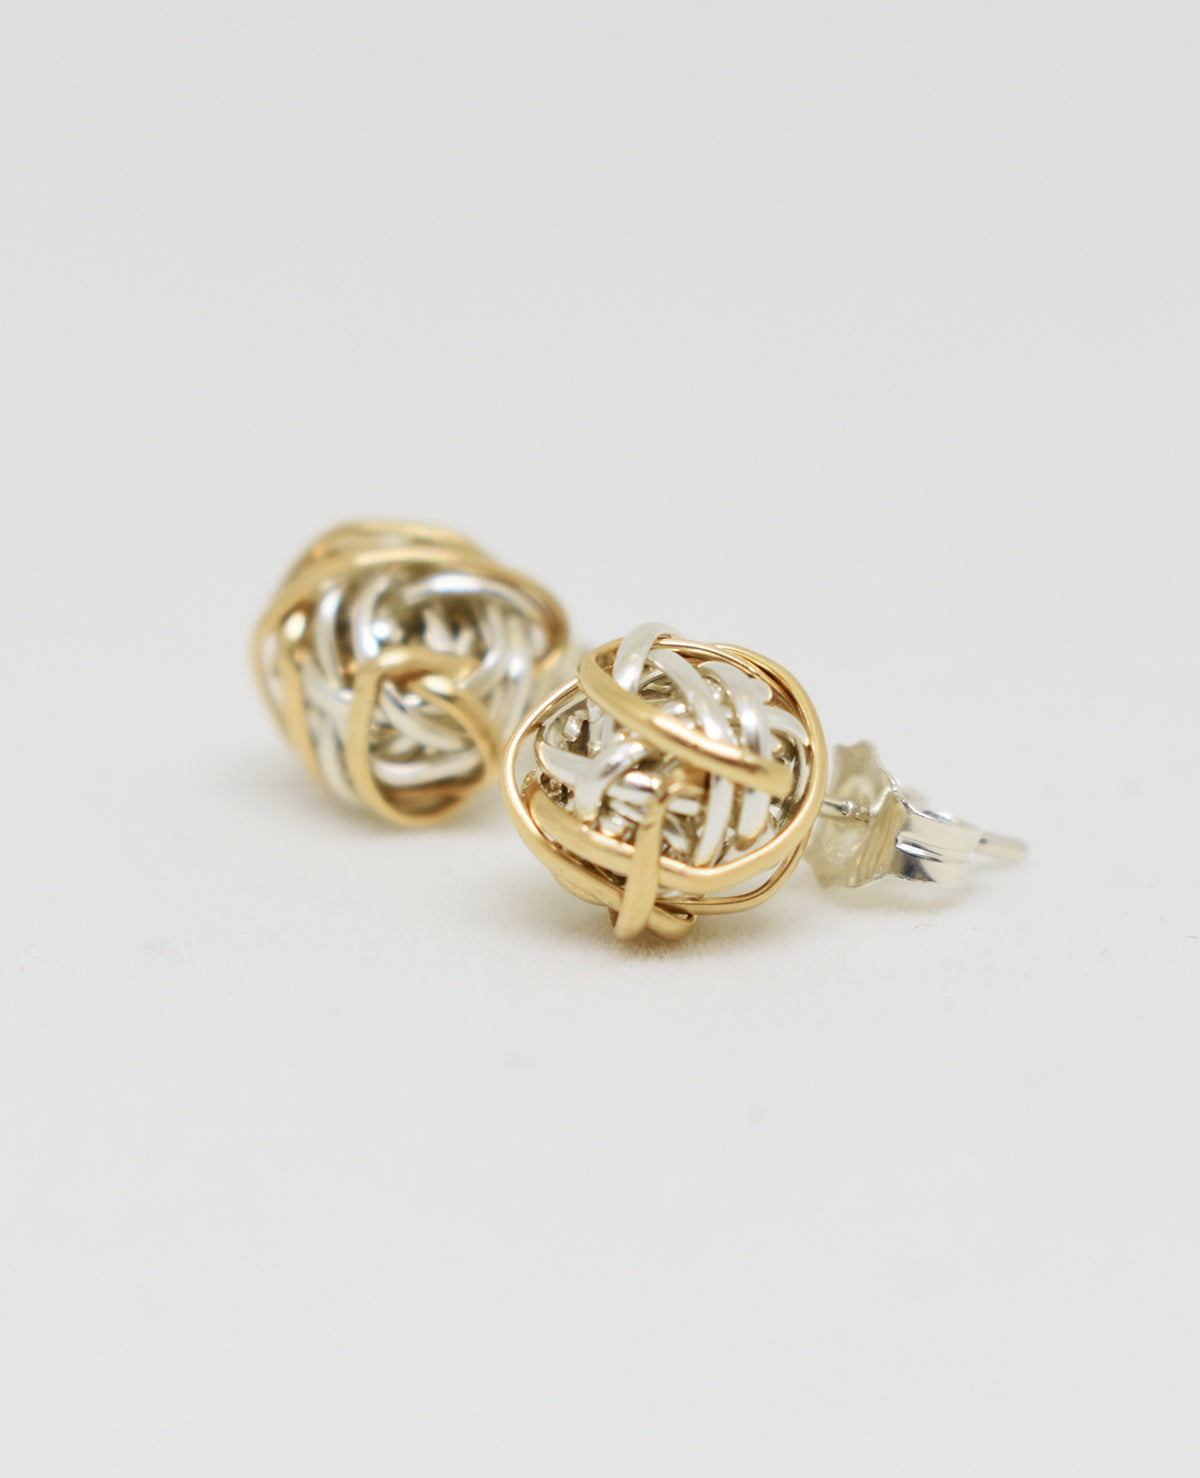 Boucle d'oreille Mix Twist Stud earring, Dianne Rodger Jewellery Fait au Canada